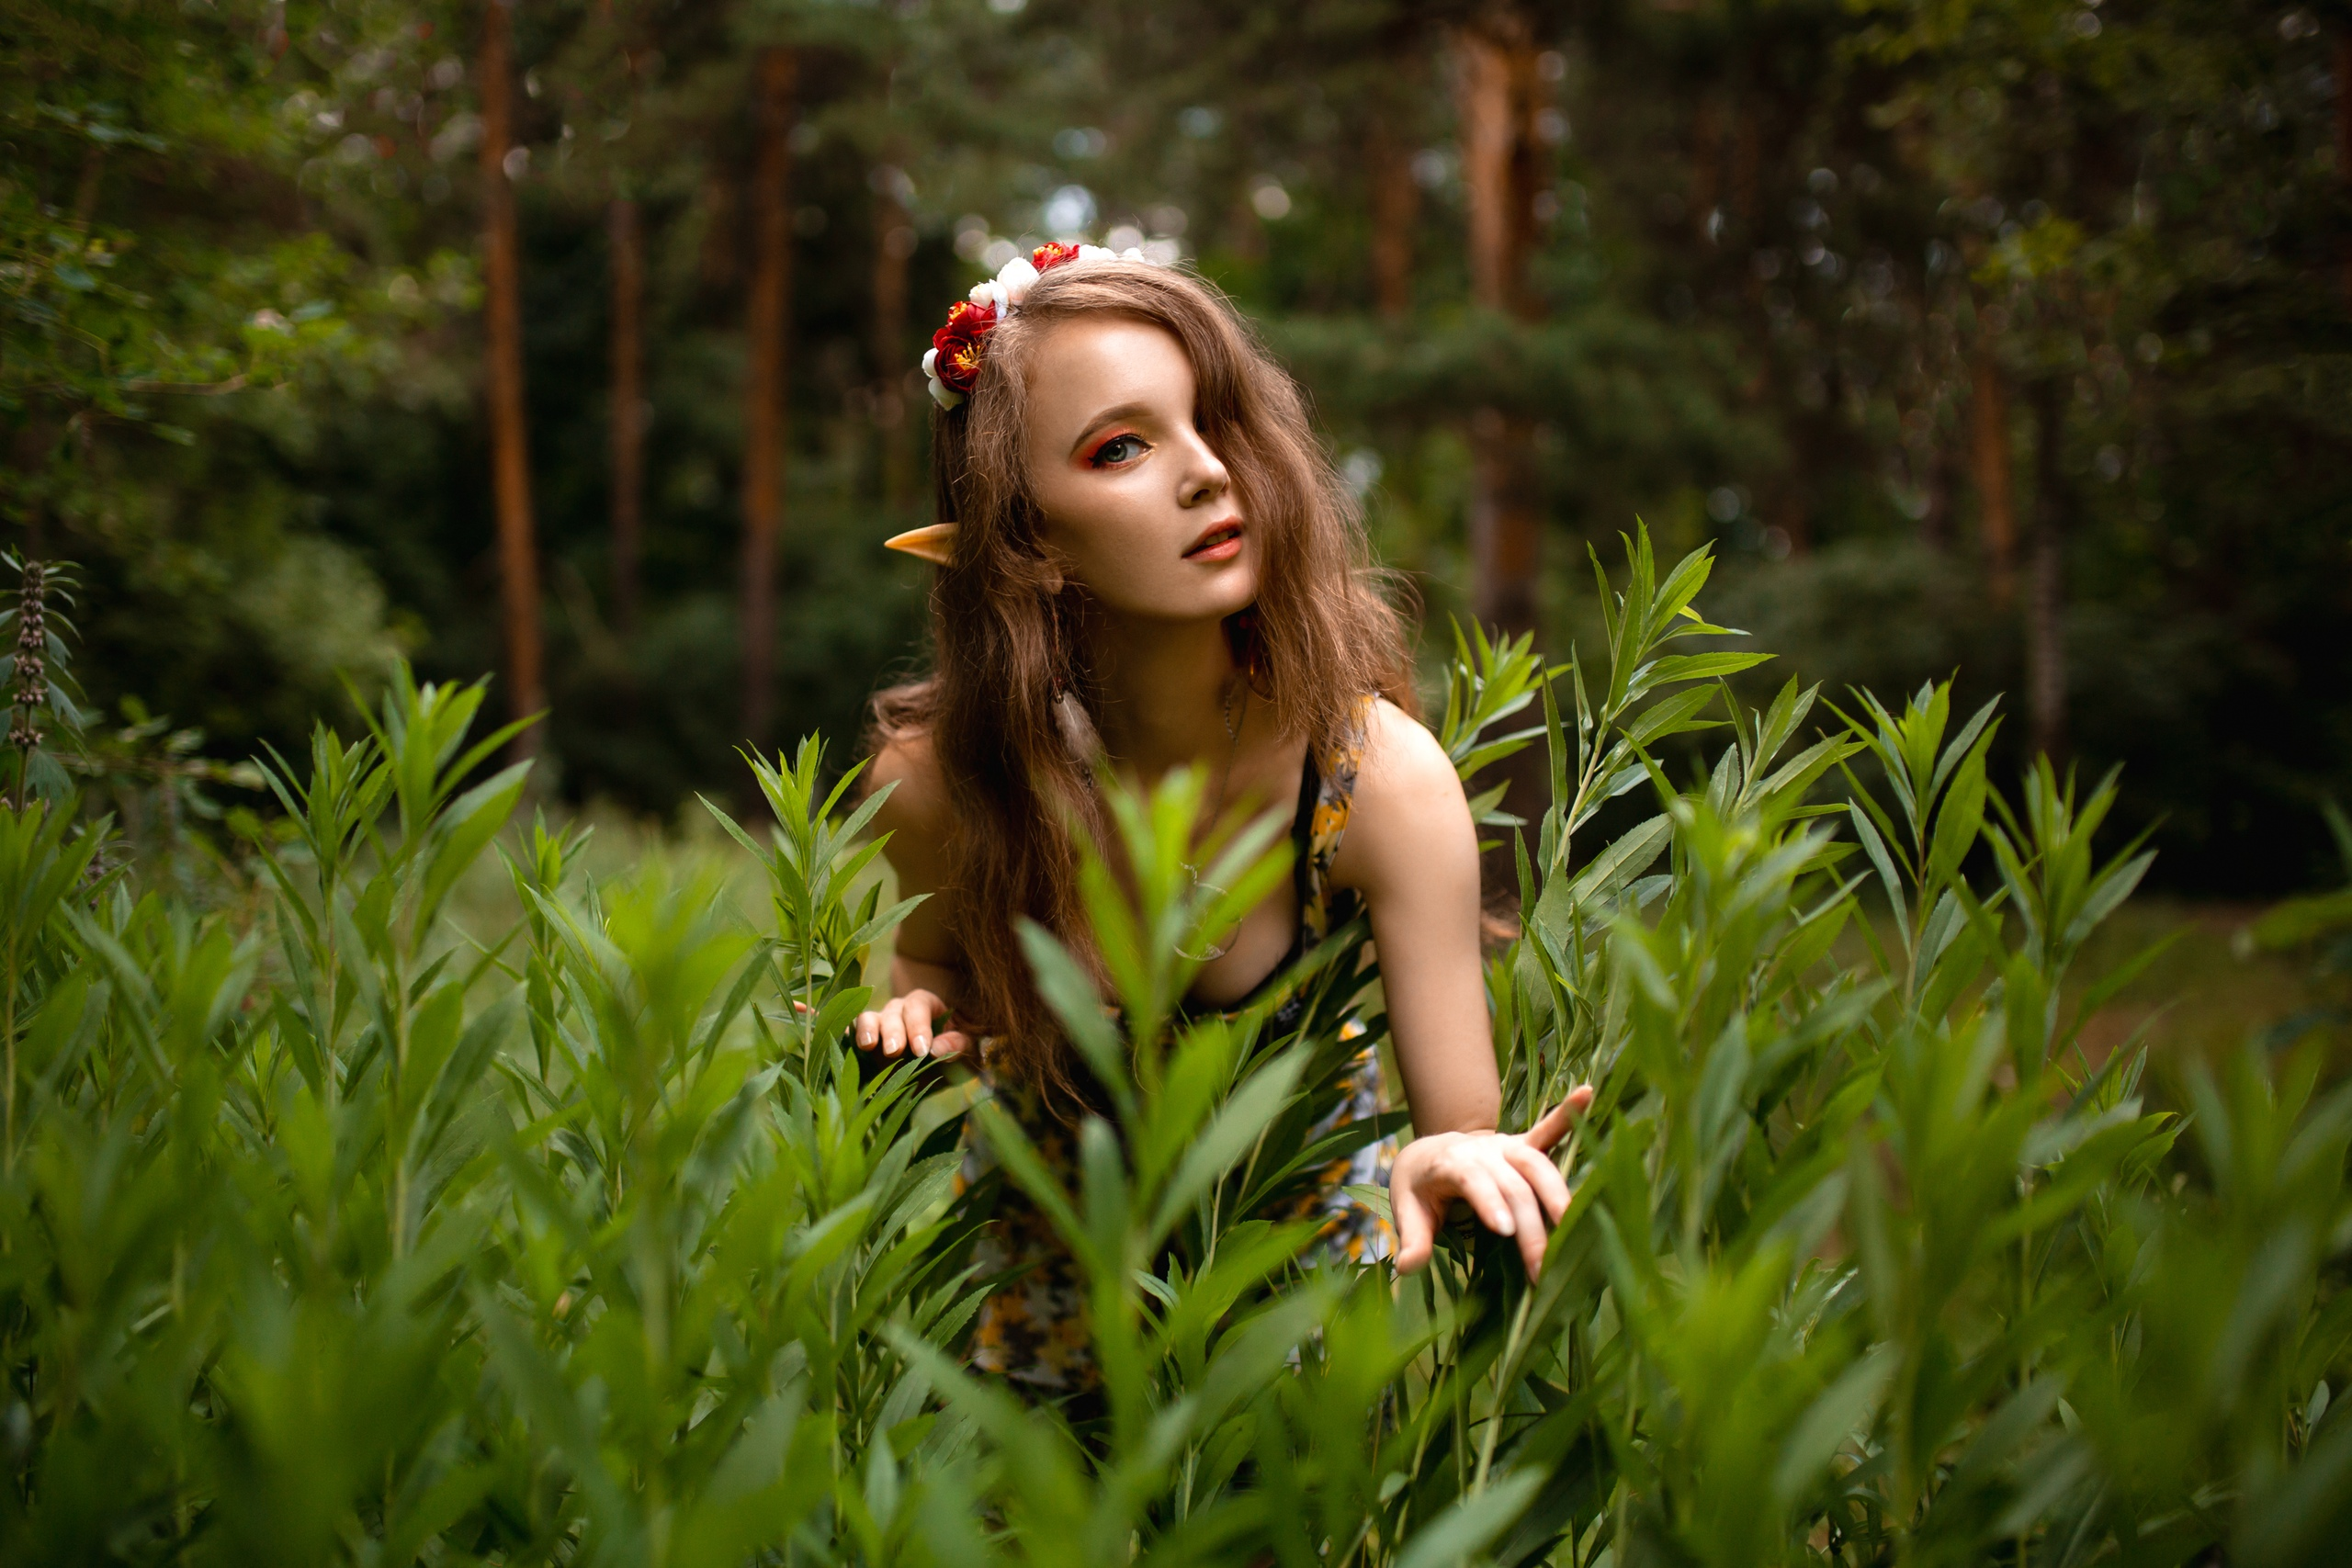 People 2560x1707 Ksana Stankevich women model brunette long hair looking at viewer makeup hair in face elves fantasy girl pointy ears cosplay forest trees plants bokeh cleavage necklace dress flower in hair depth of field portrait outdoors women outdoors